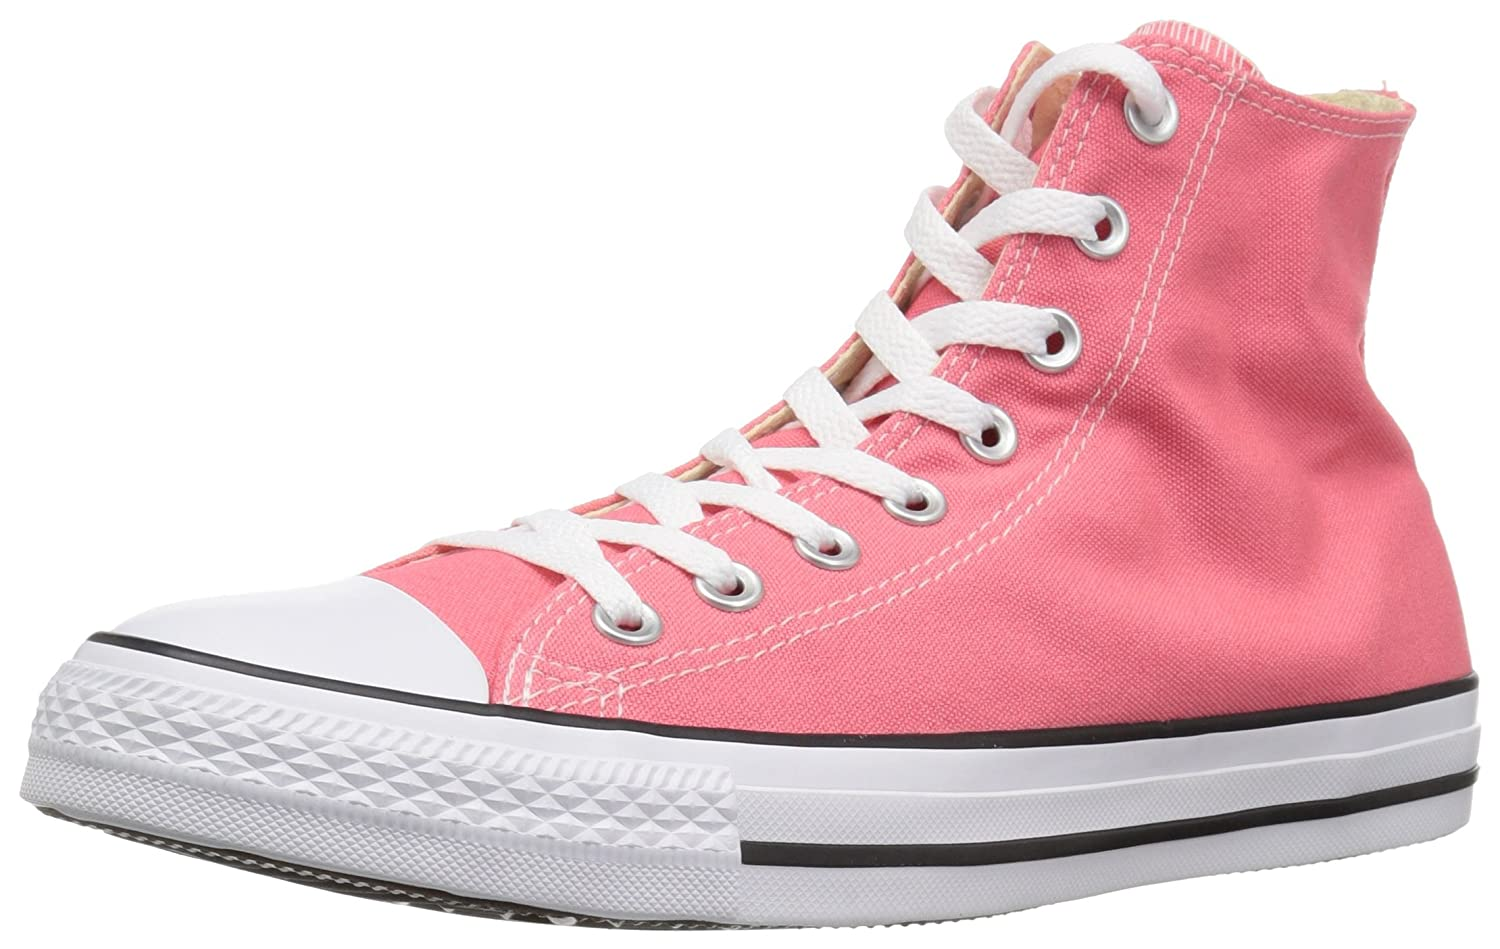 Converse Chuck Taylor All Star 2018 Seasonal High Top Sneaker B078NH4H5Z 4.5 M US|Punch Coral